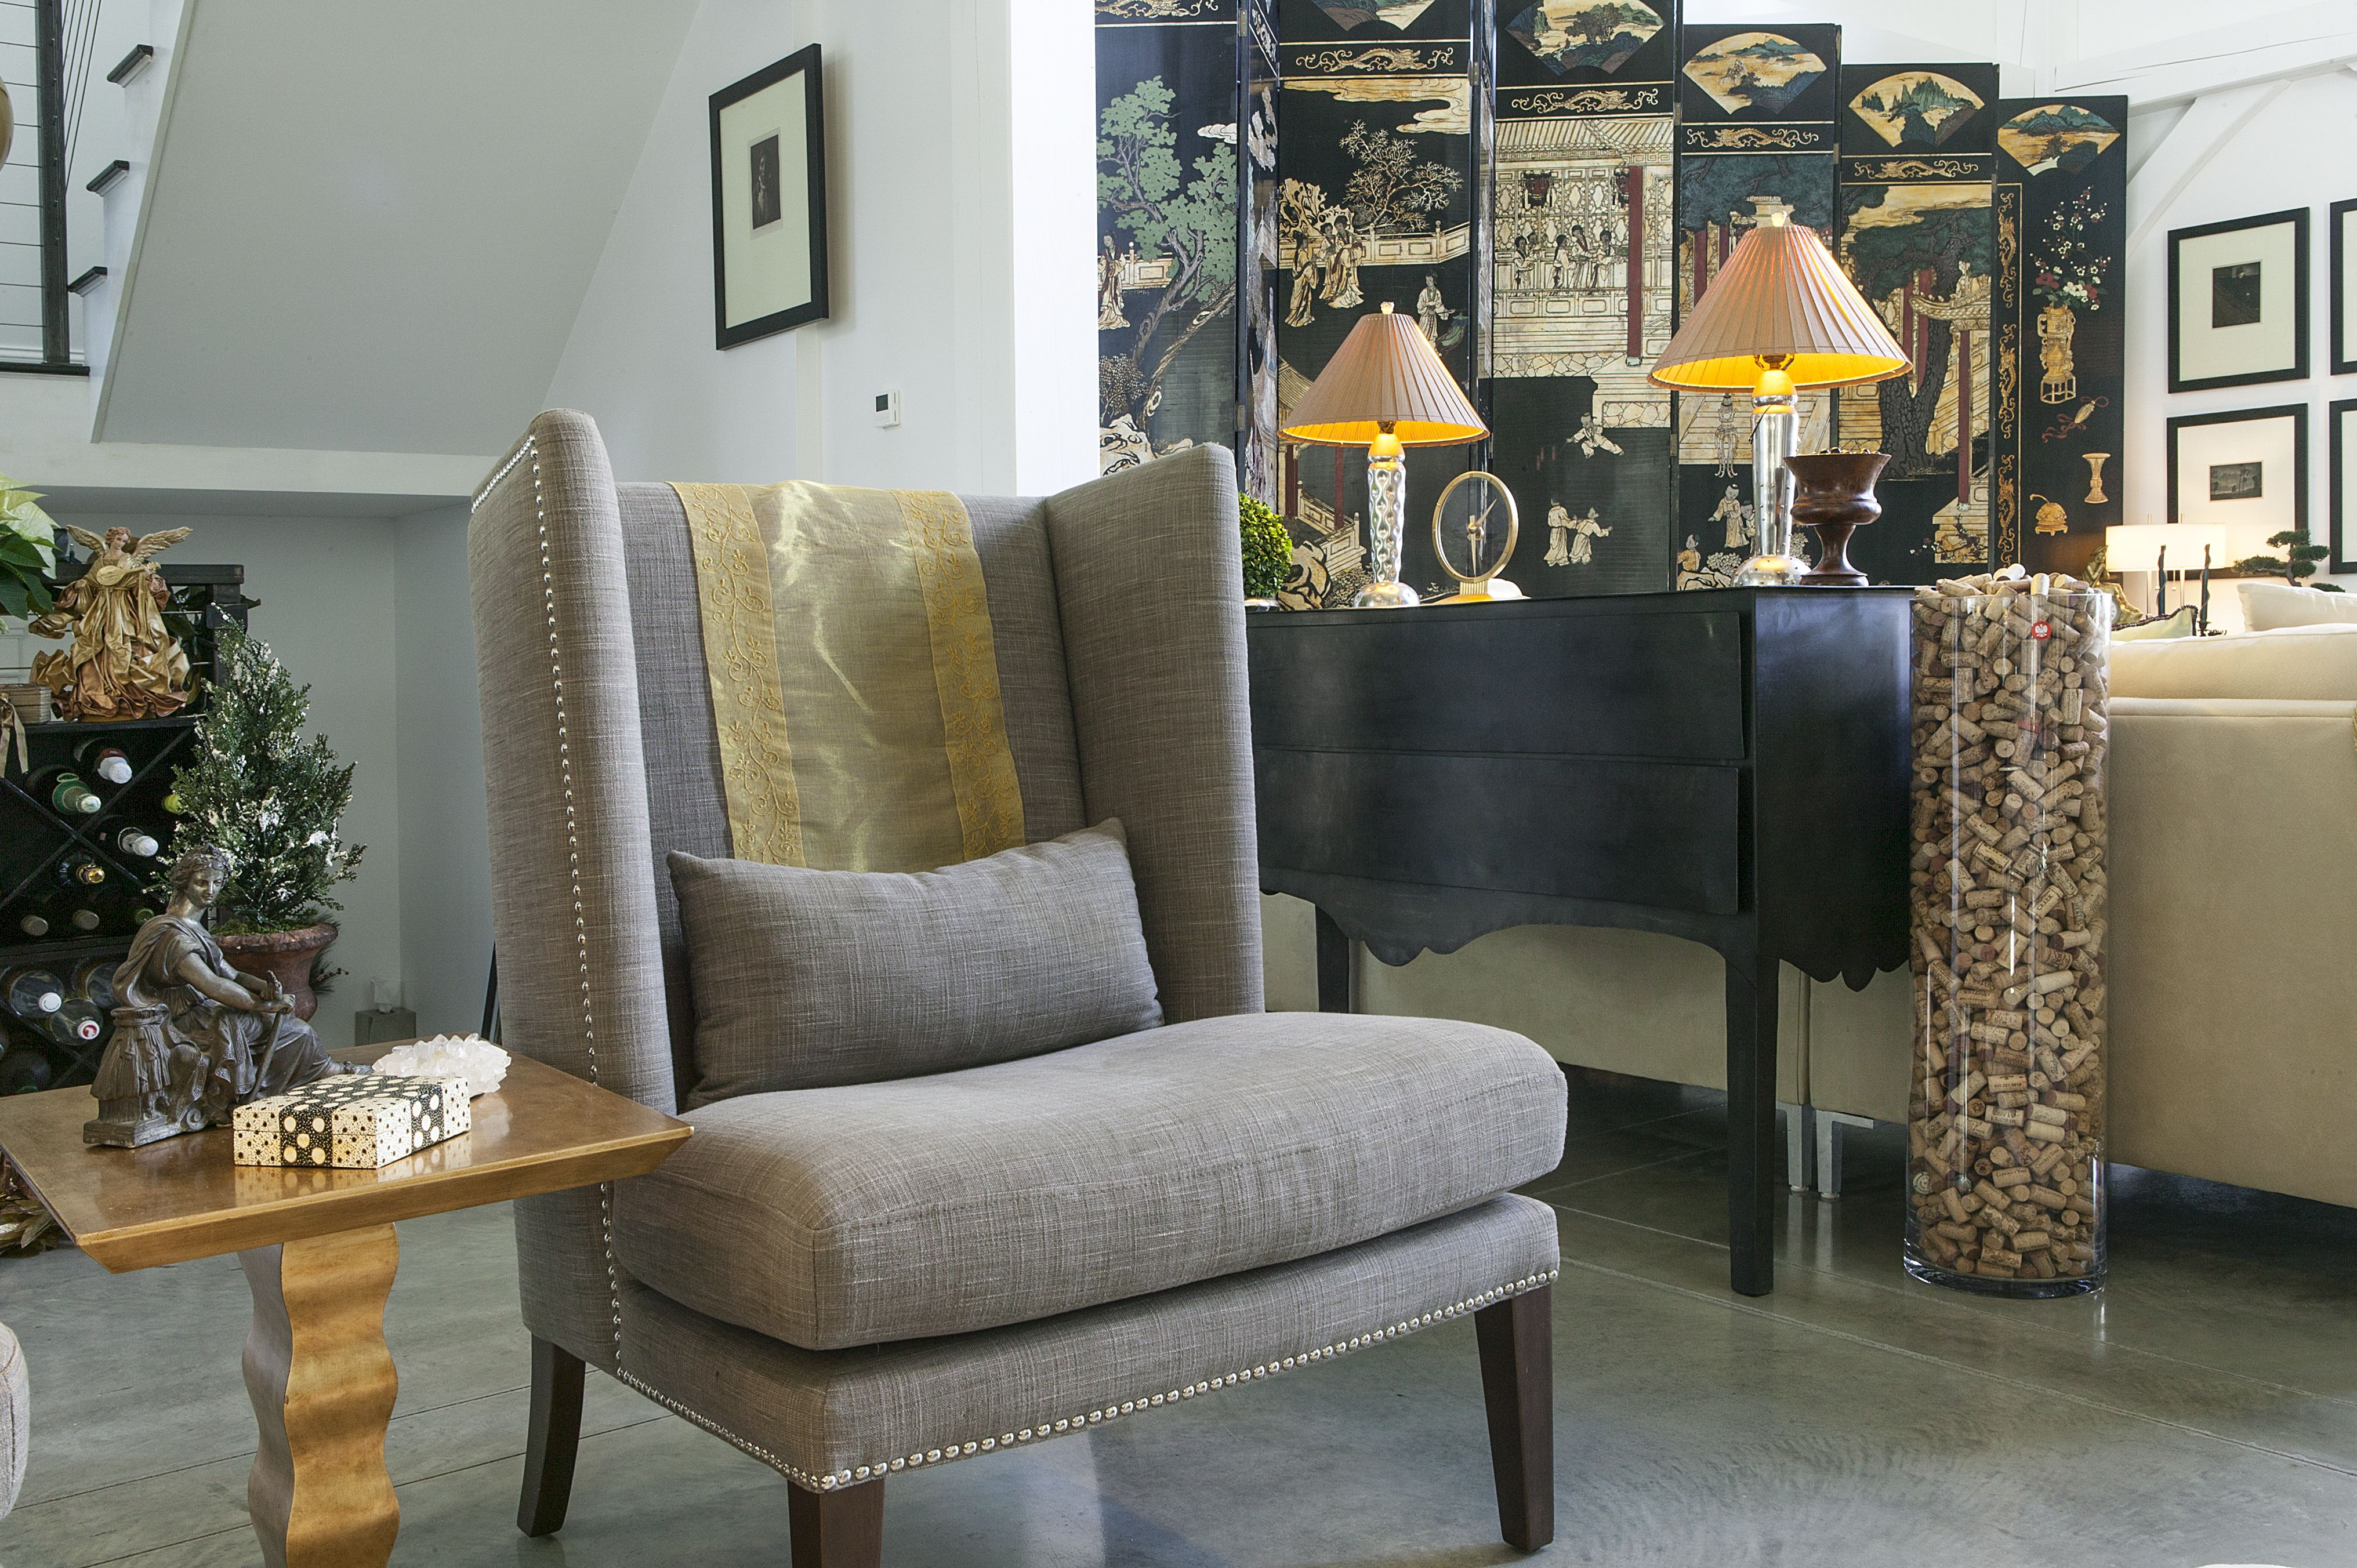 I love my pair of nail head chairs and the zinc sideboard. A large vase holds wine corks - a great conversation starter:)